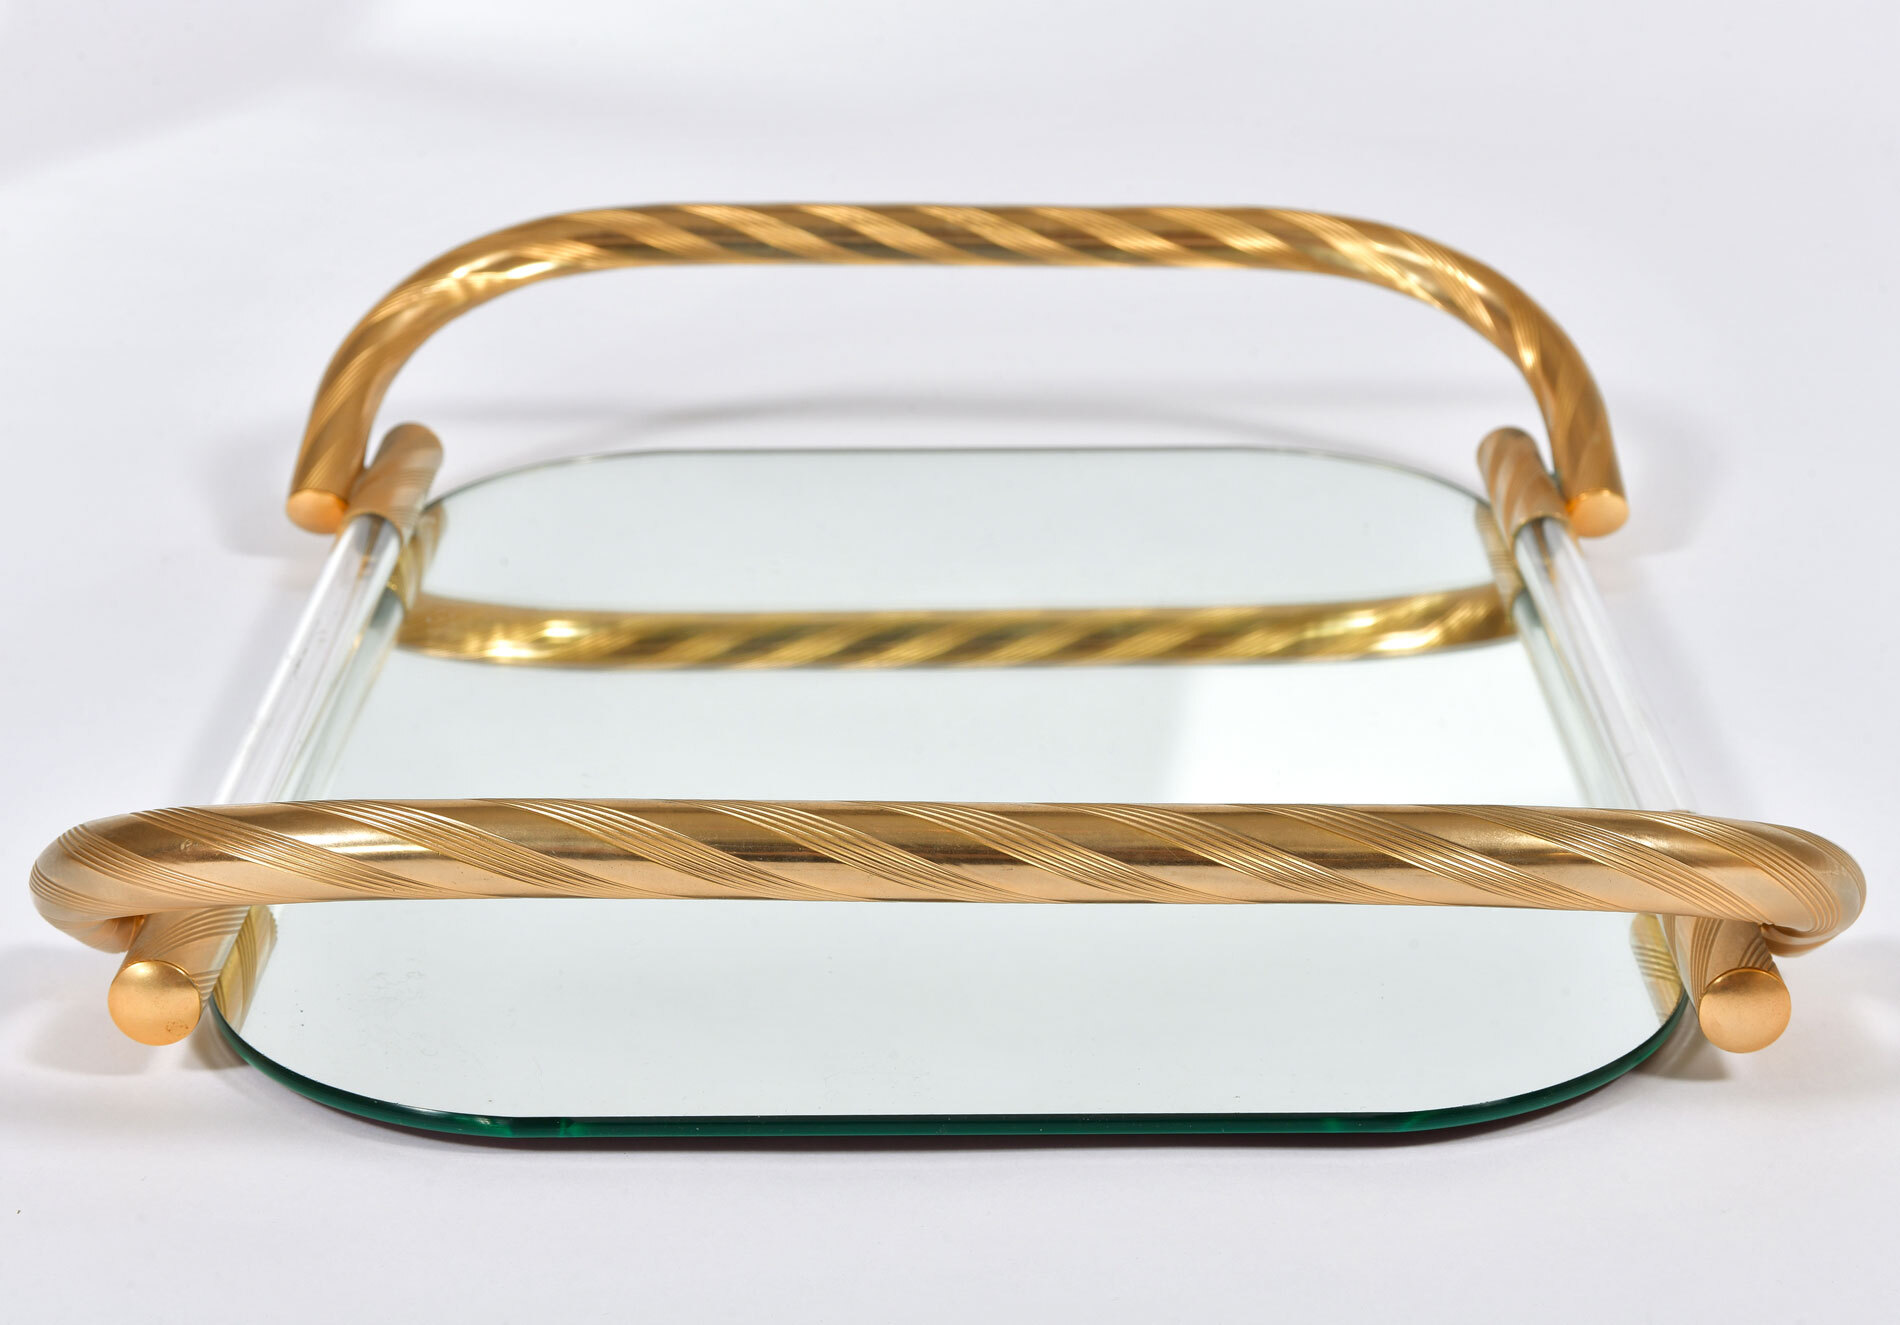 Brass And Mirror Tray 03